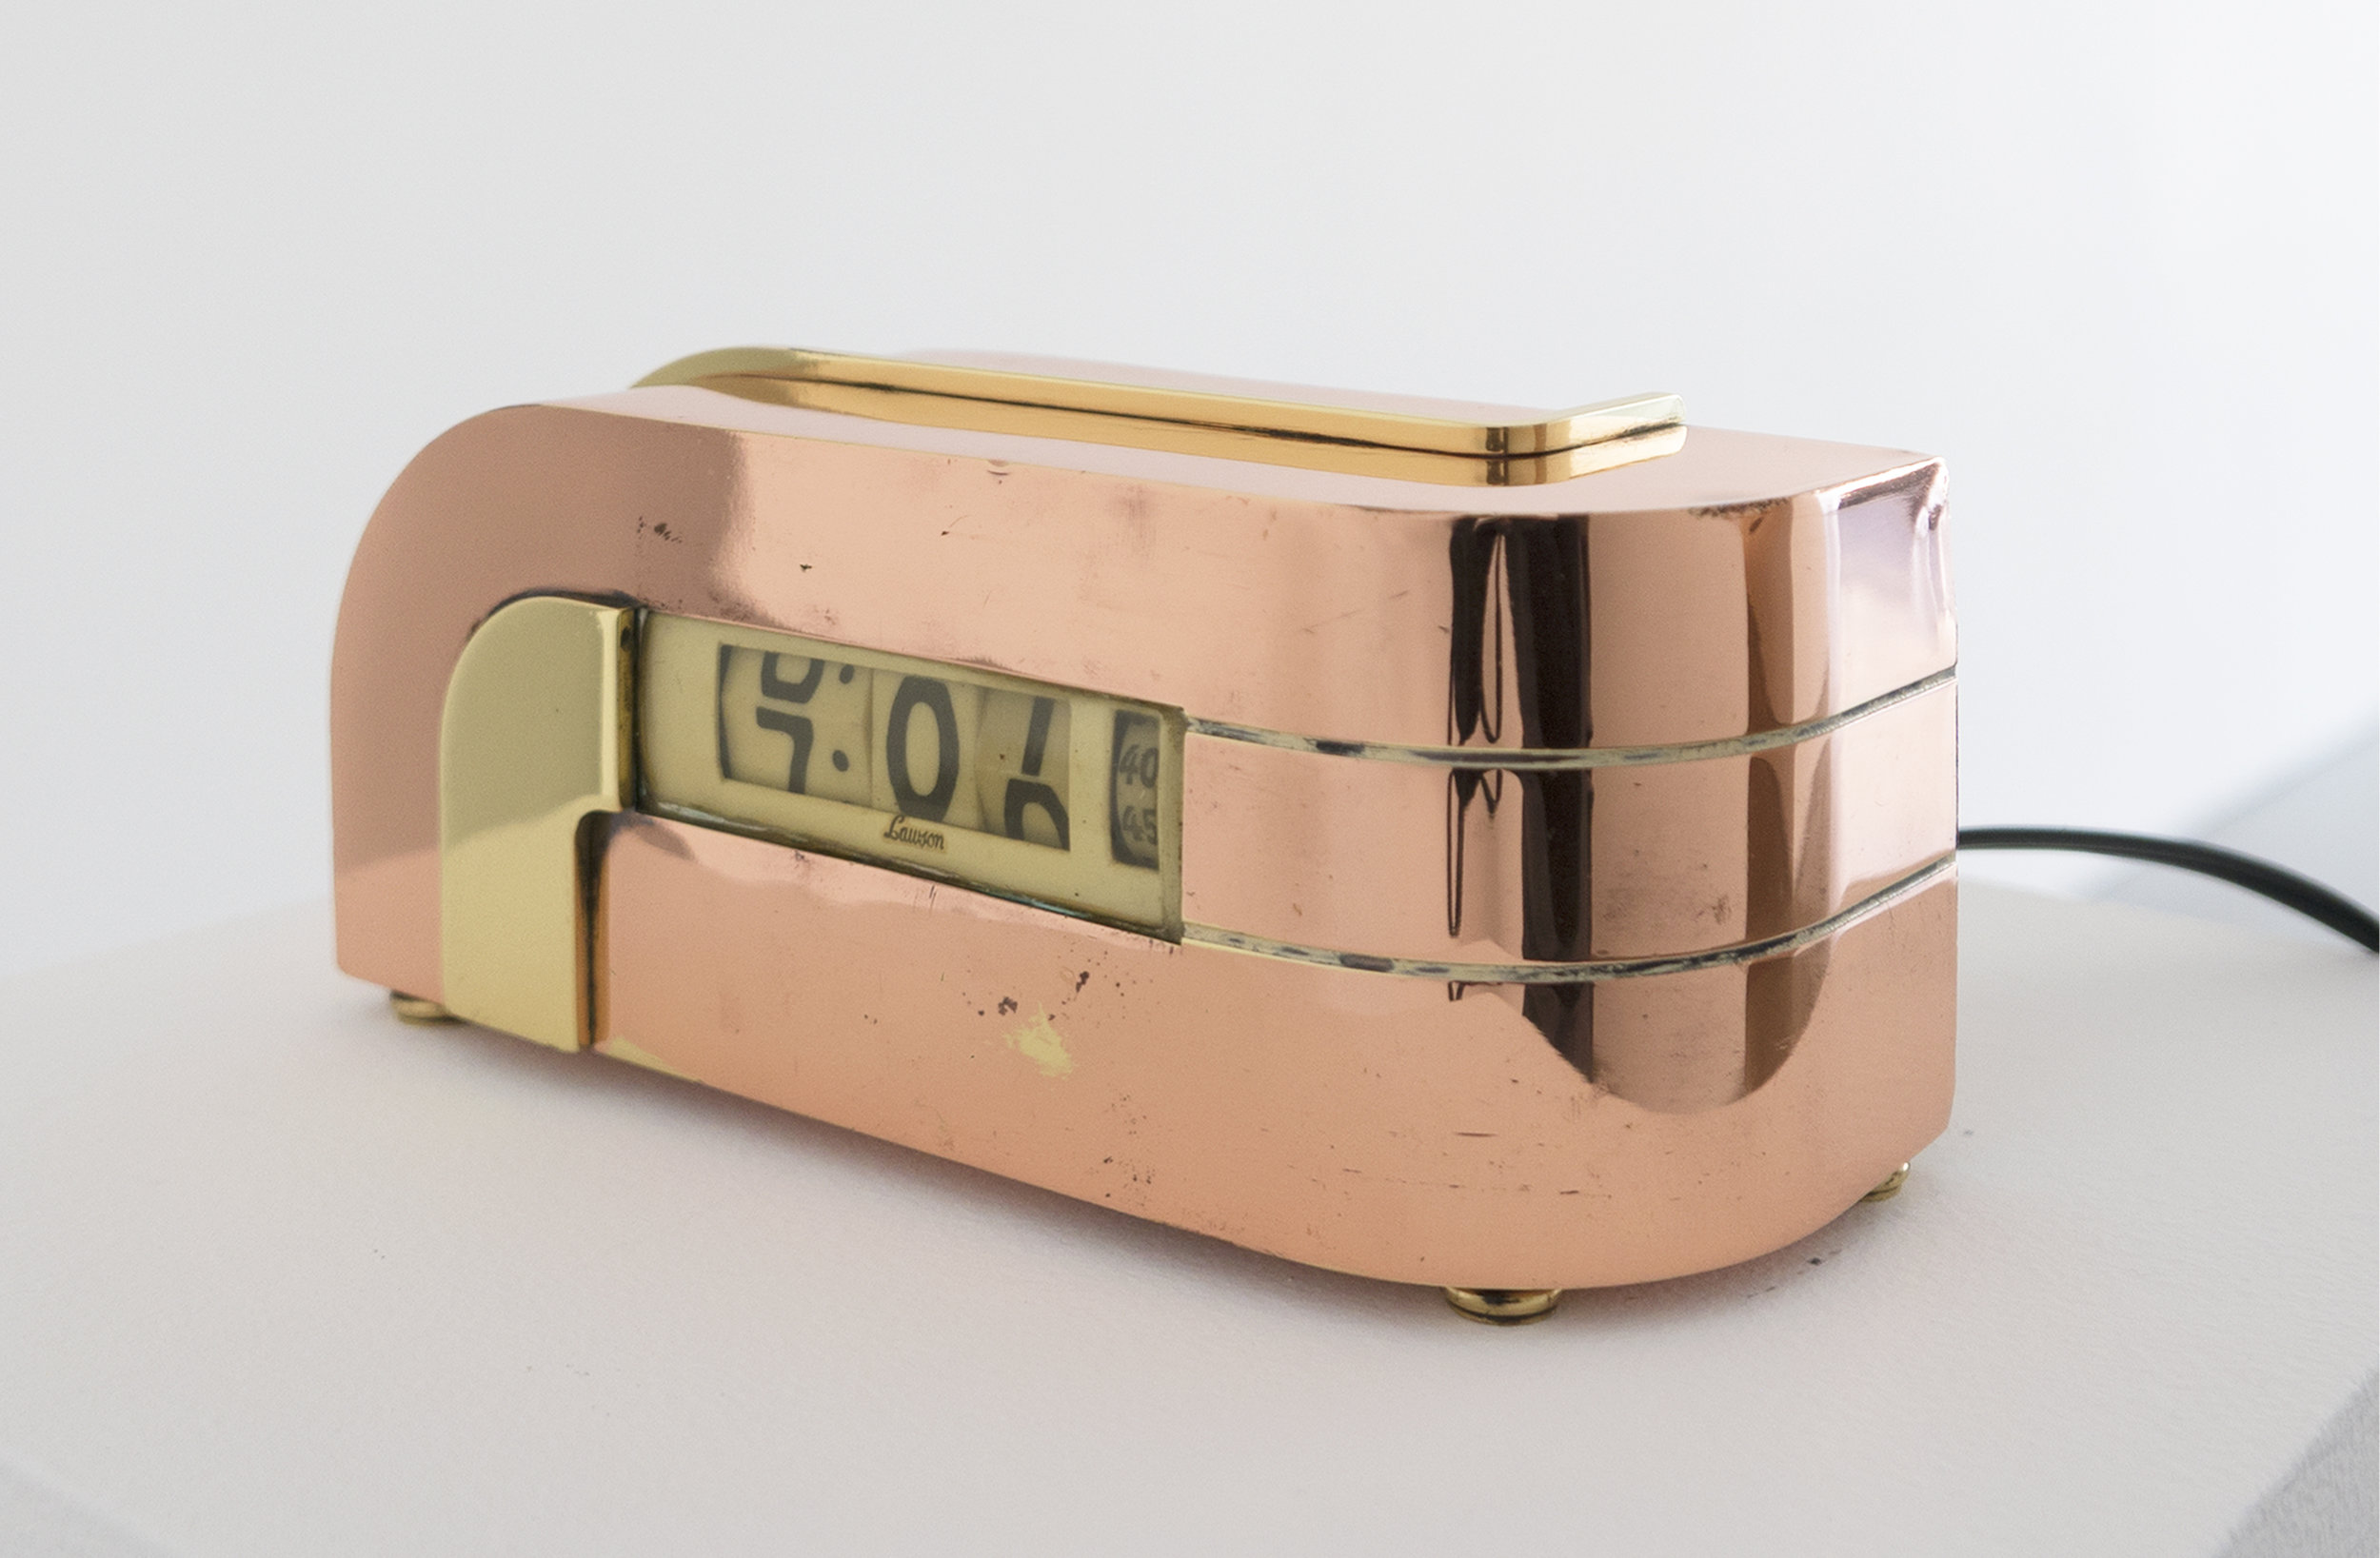 KEM Weber, 'Zephyr' Clock, 1933, 8 x 3.5 x 3.5 inches, Copper, Brass.jpg